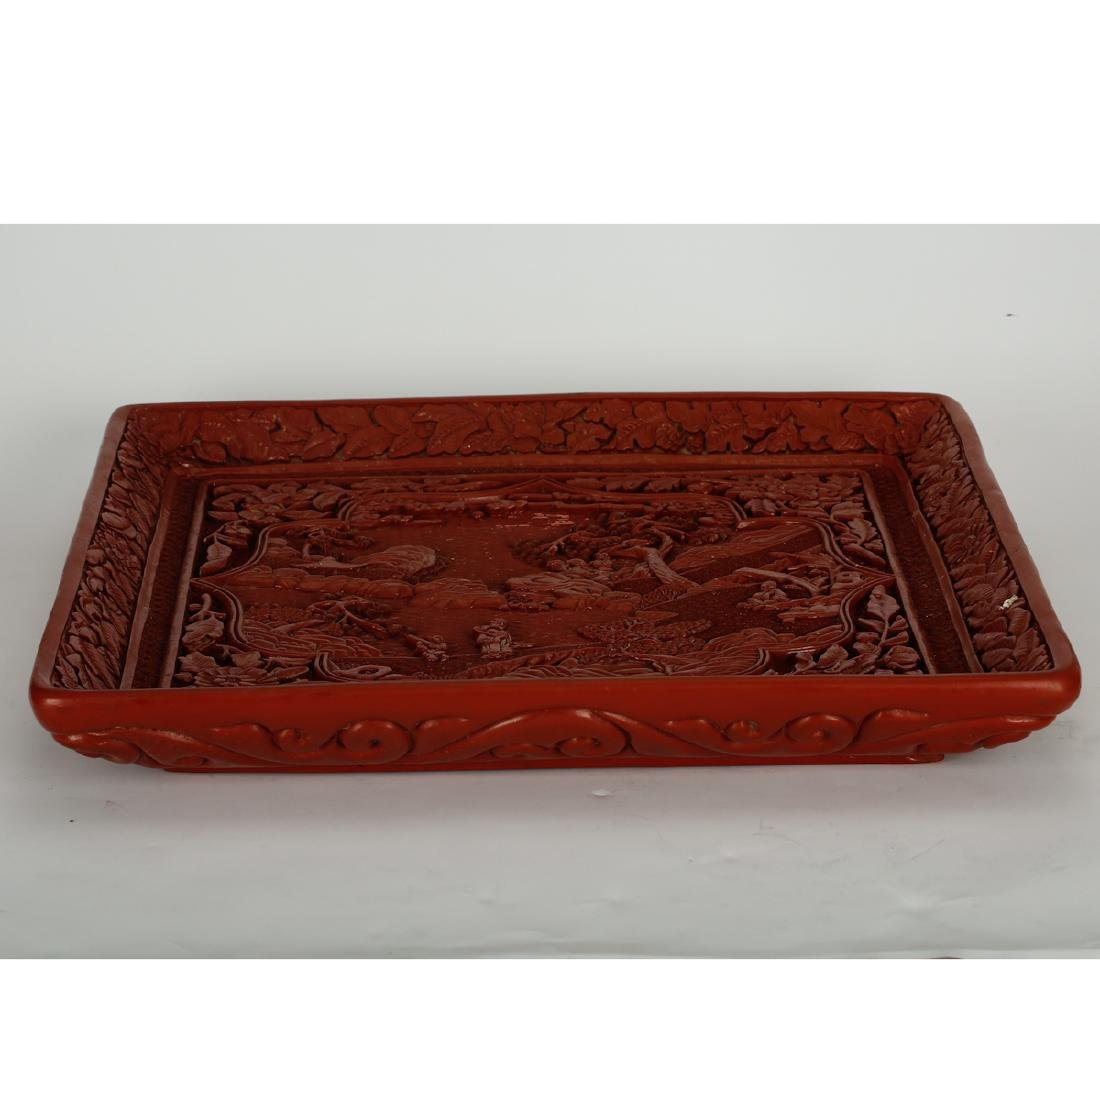 CHINESE CINNABAR LACQUER DISPLAY TRAY - 5